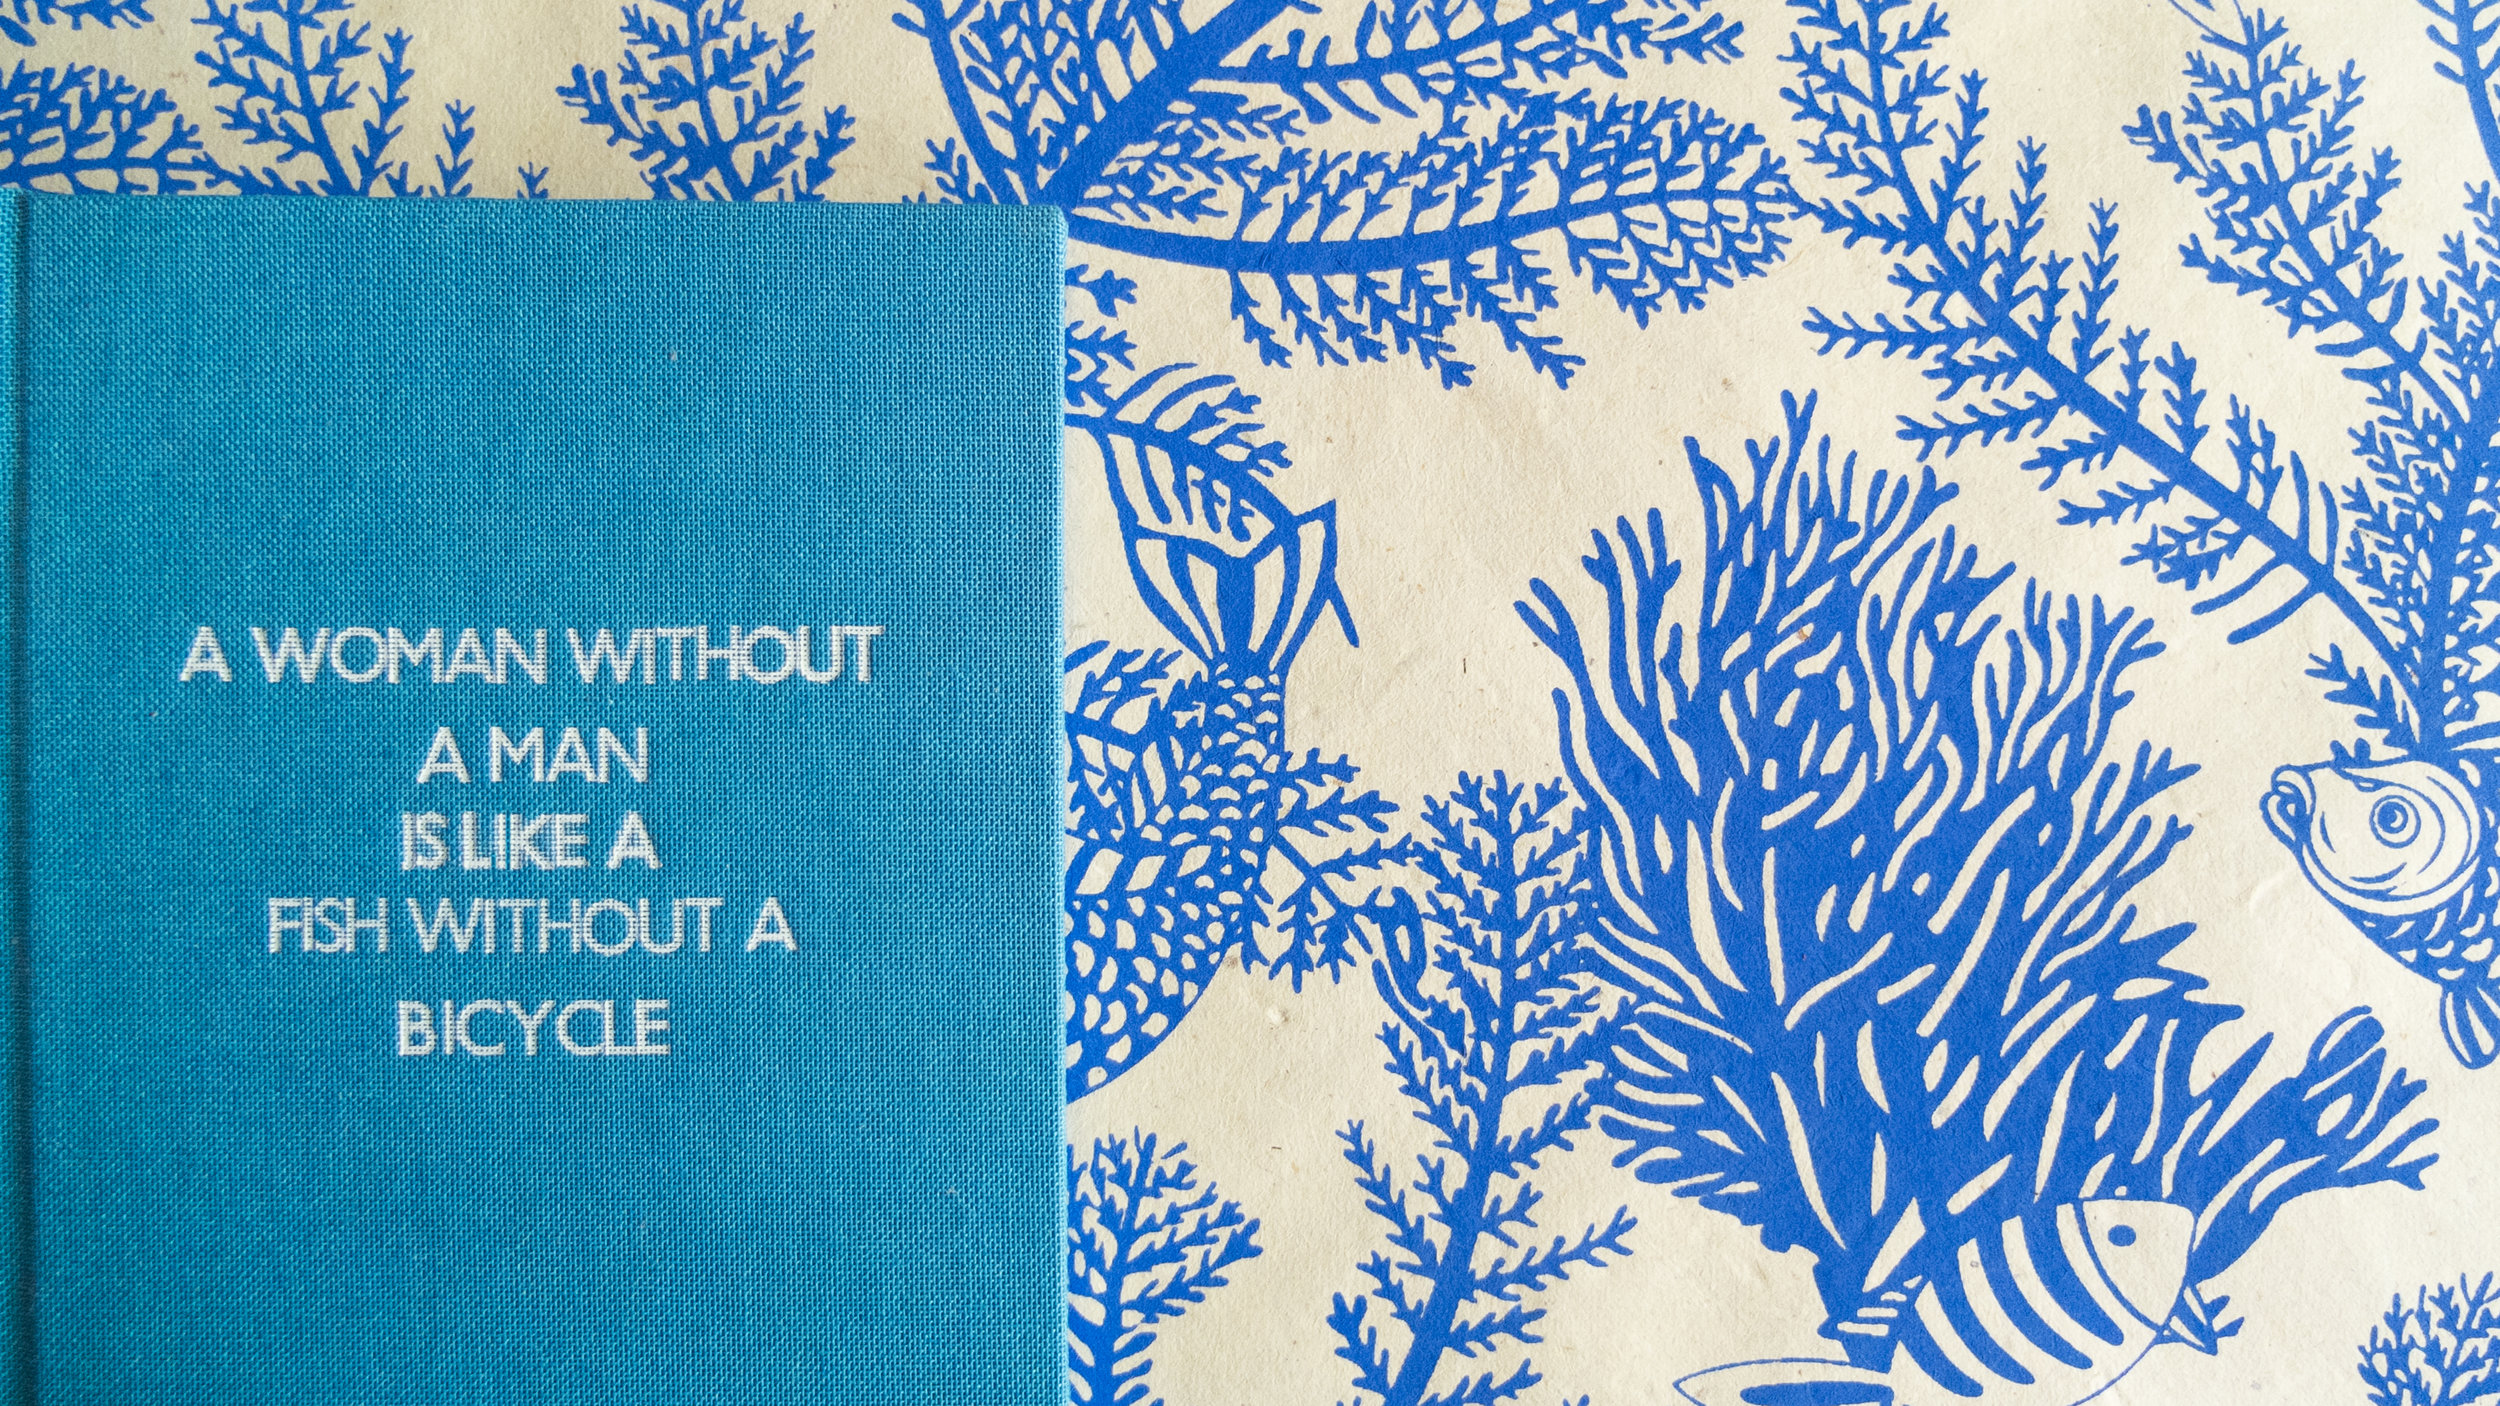 A Woman without a man is like a Fish without a bicycle - This quote tickles me everytime i read it, i love it so much and when i found the fish endpapers in Paperchase I let out a tiny squeal as i knew it would work so well with it. The quote is often attributed to Gloria Steinem, but she has ascribed the words to the Australian social activist Irina Dunn who claimed that she created the adage and wrote it on a bathroom wall in 1970